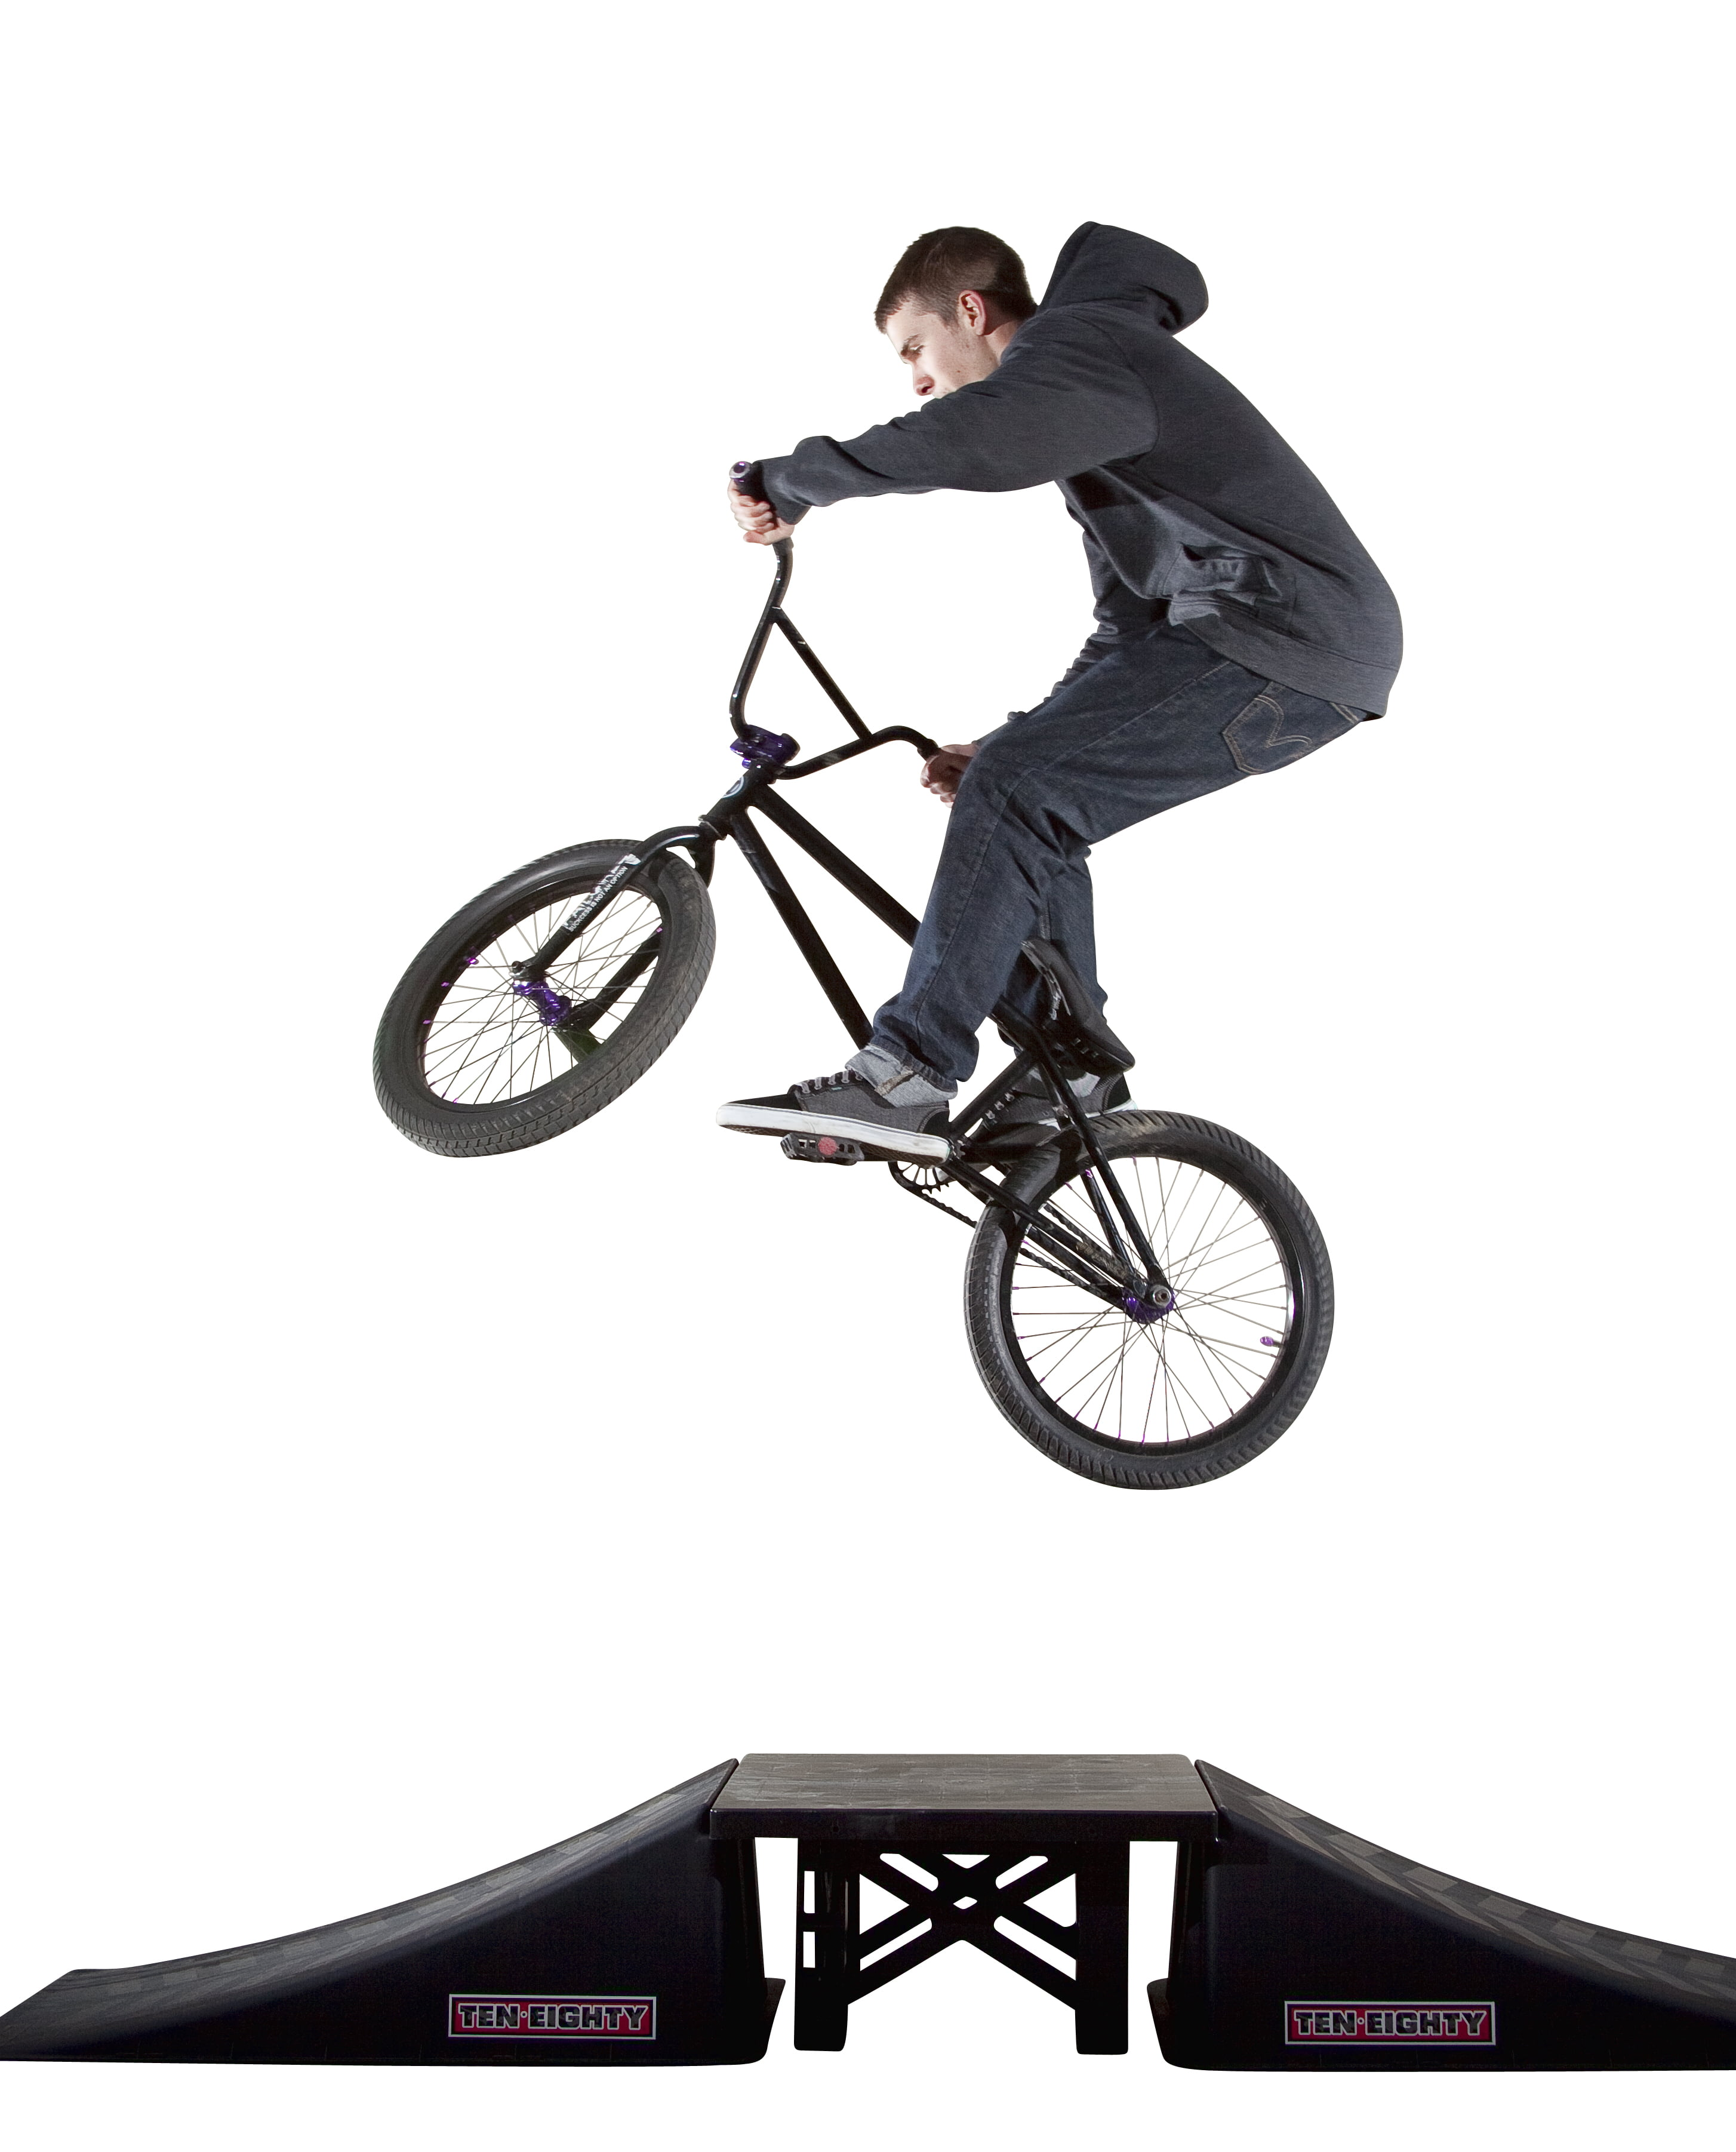 Ten Eighty Launch Ramp for Scooter Skateboard Bike Inline Skate Riders Safety